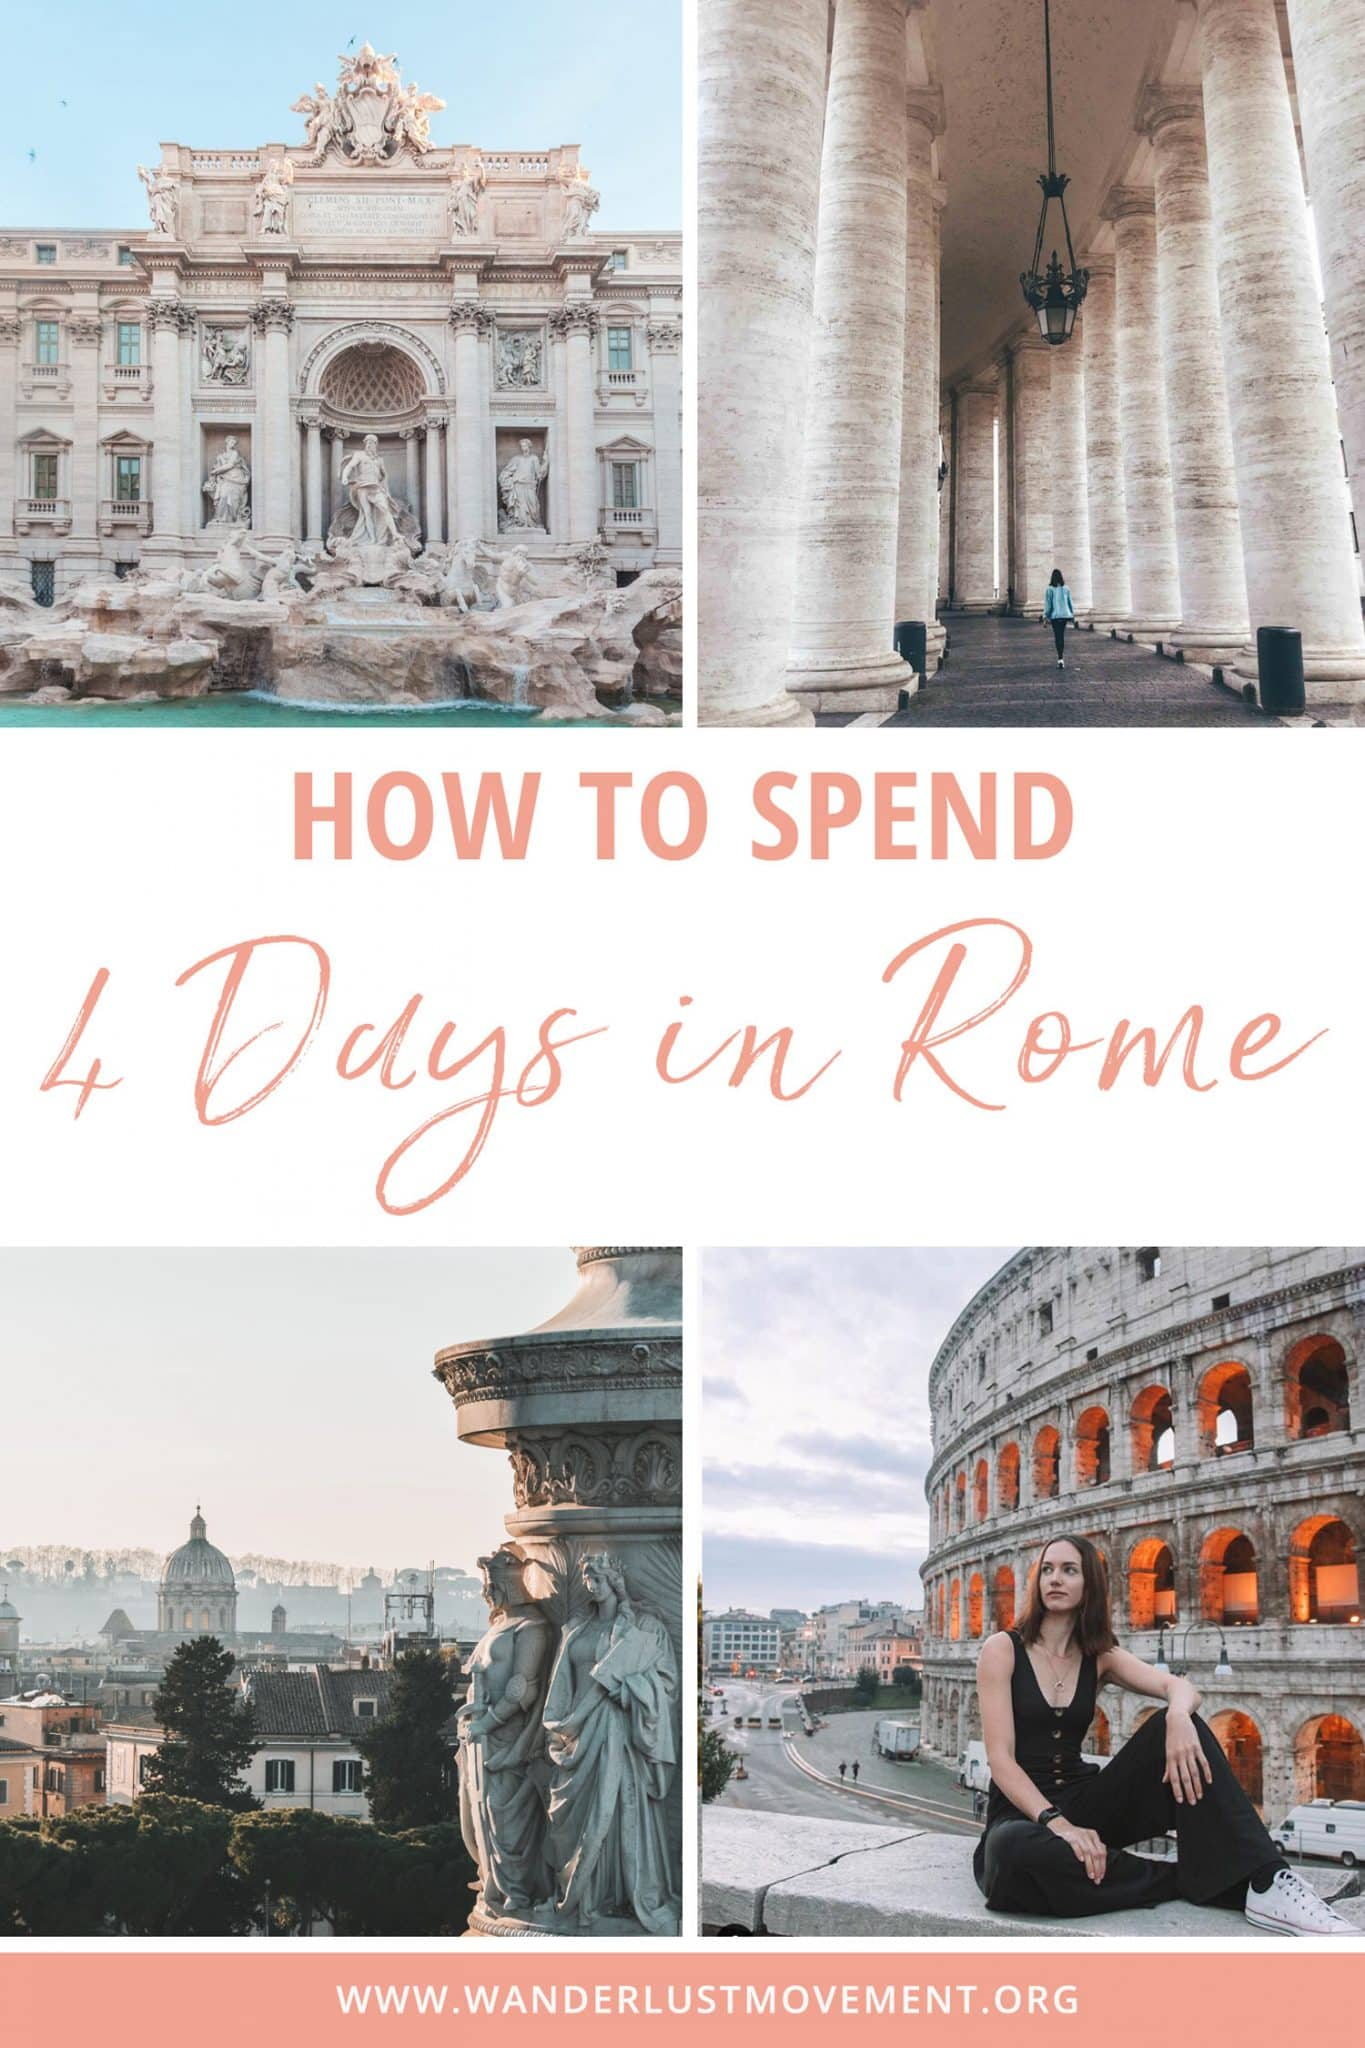 Rome is one of the best destinations in Italy. It\'s full of history, delicious food and you can see most of the top attractions for FREE. Here are some of the best things to do in Rome, where to stay in Rome and how to see the top Rome attractions like the Colosseum, Palatine Hill, Trevi Fountain, the Vatican and more with only a 4-day itinerary.